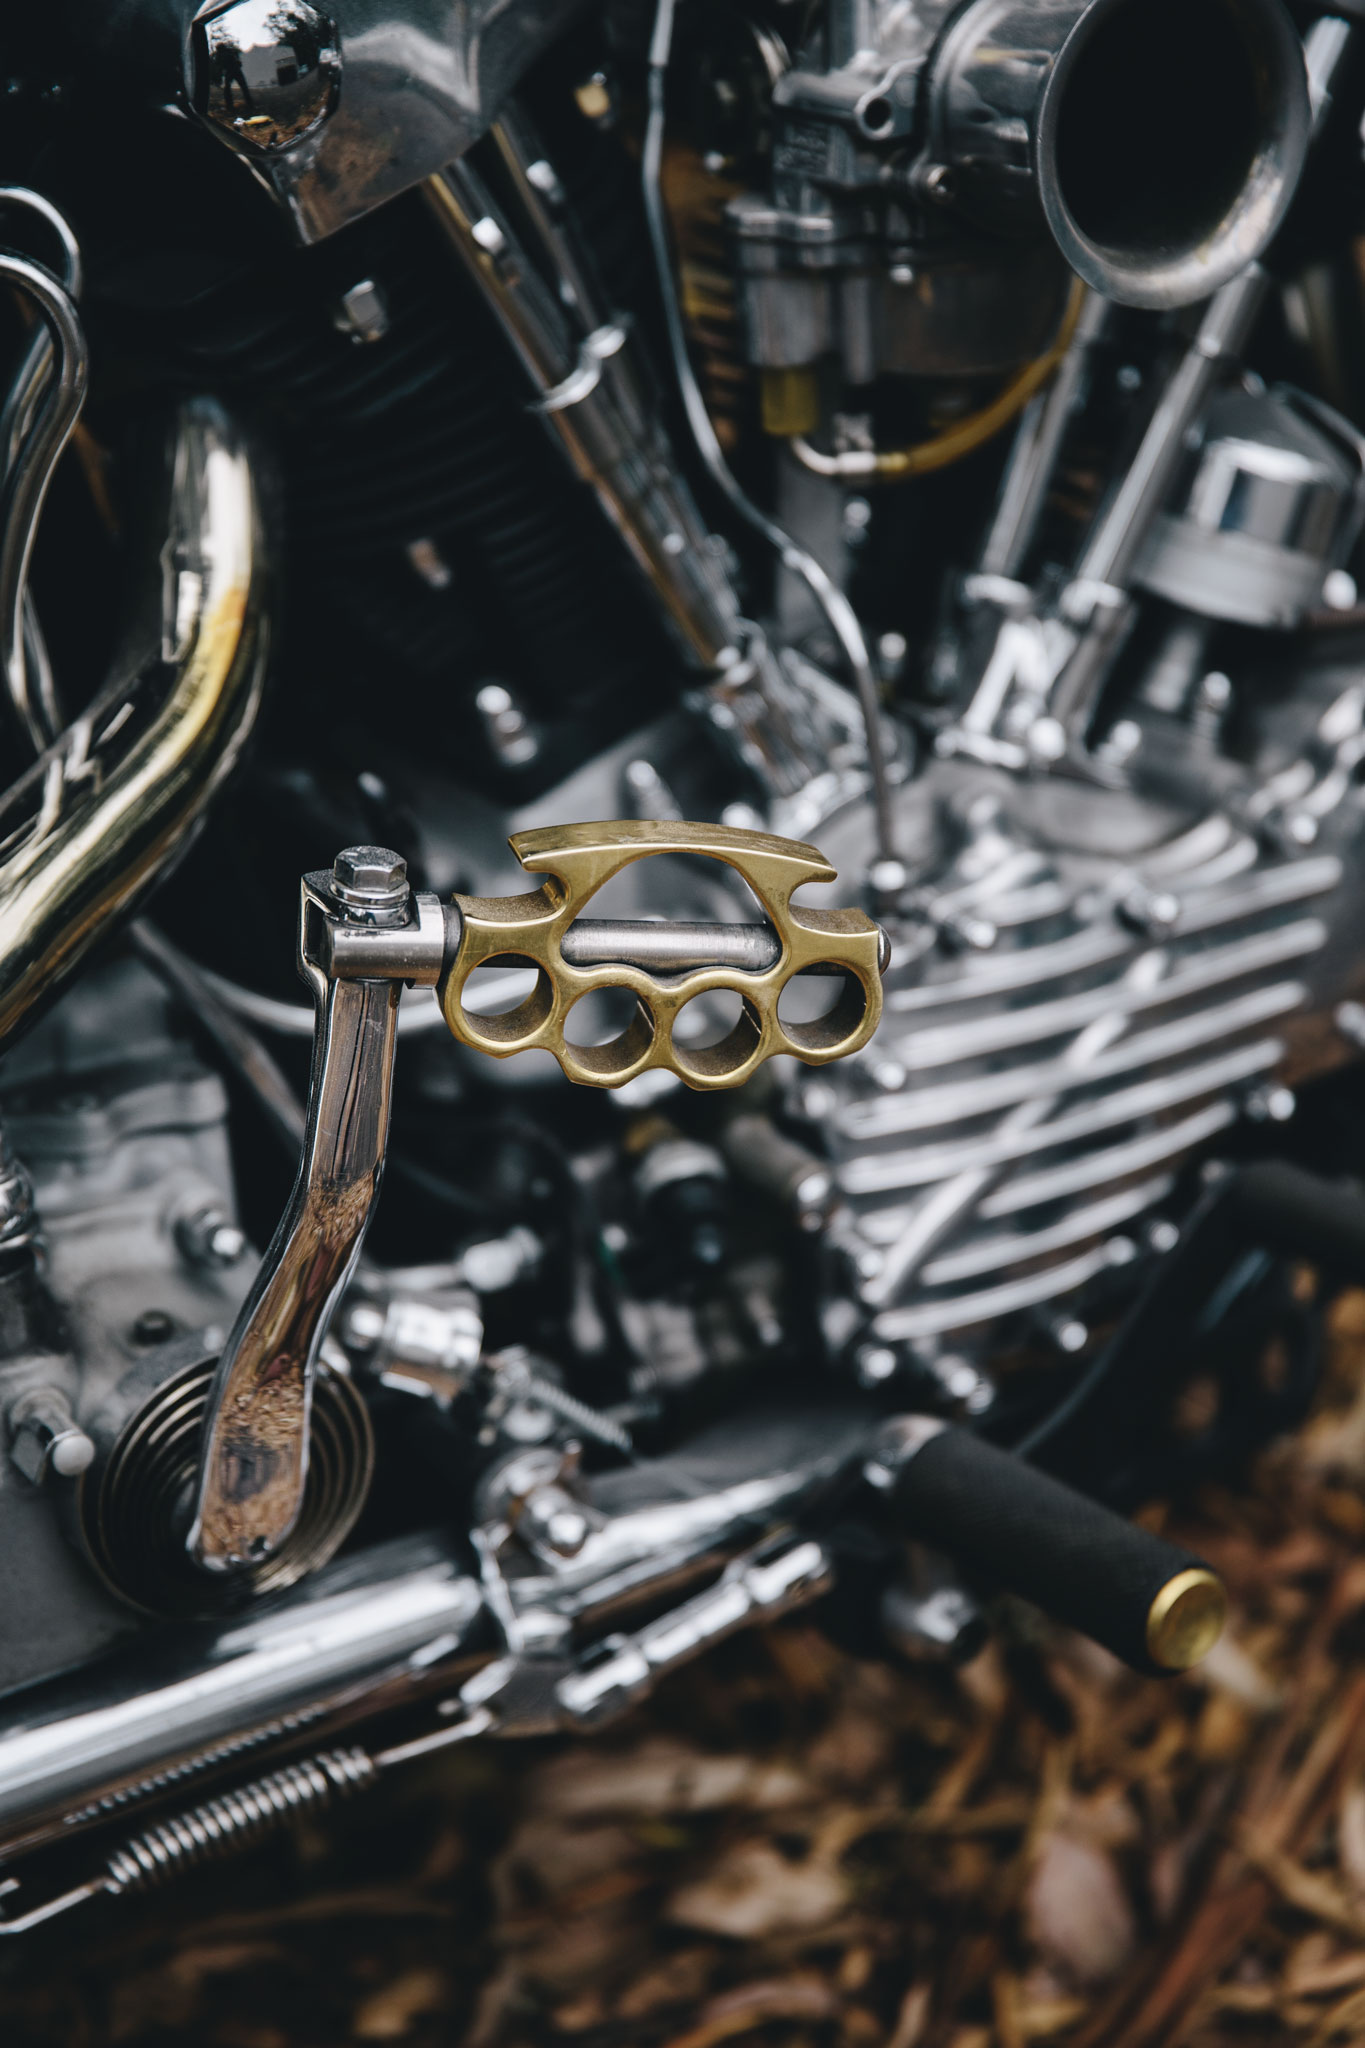 knucklehead_bobber_chopper-7